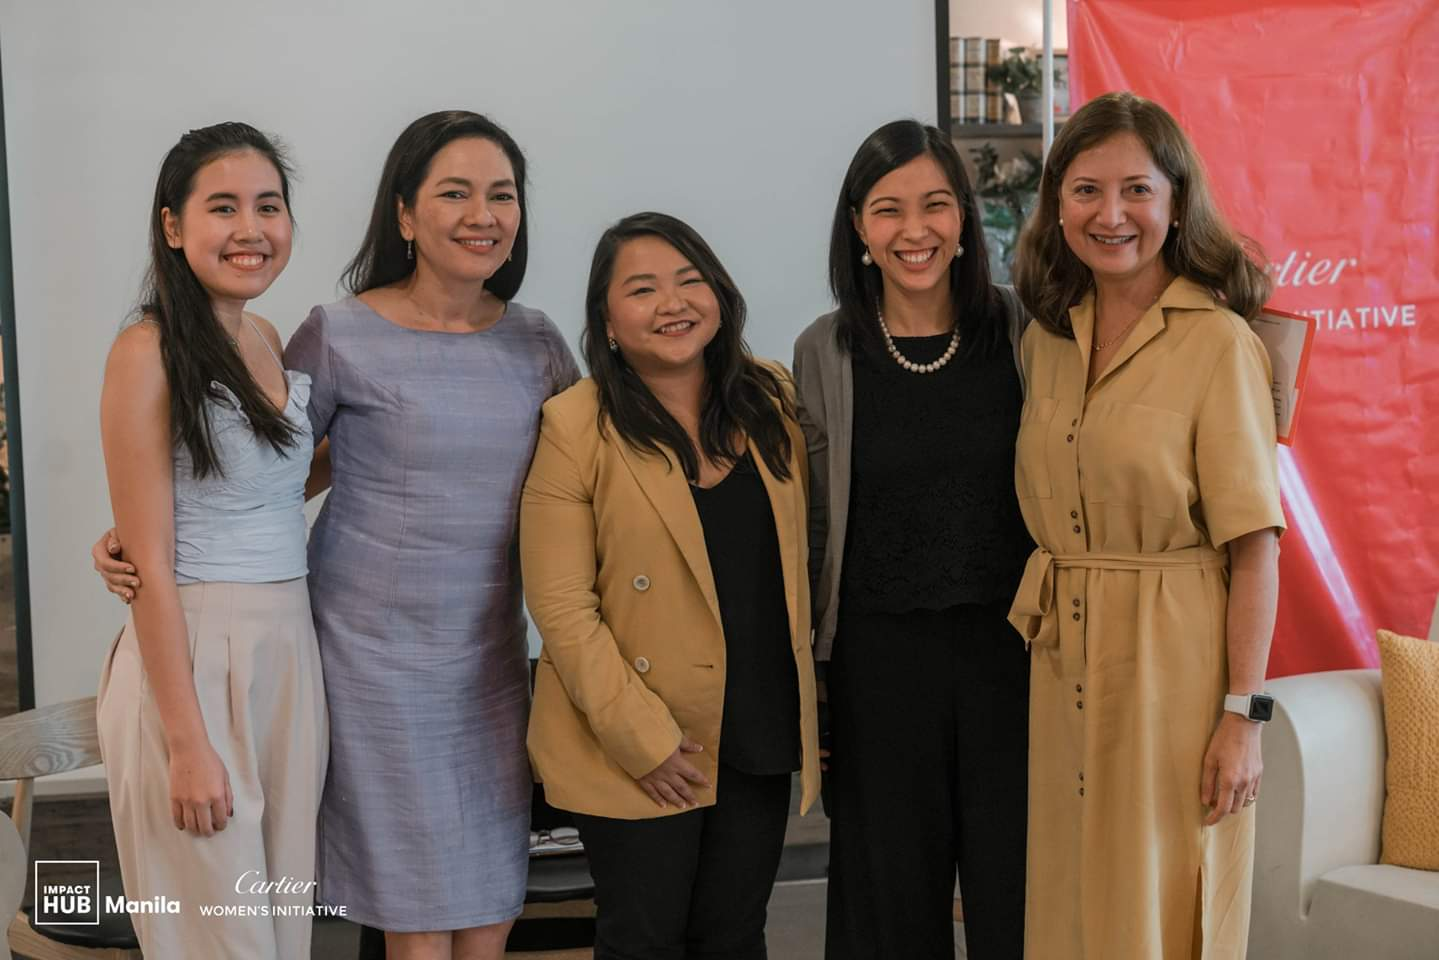 From left to right: Audrey Pe of WiTech, Senator Risa Hontiveros of Akbayan Citizens' Action Party, Ces Rondario of Impact Hub Manila, Riva Galveztan as the host, and Monette Hamlin of TeamAsia